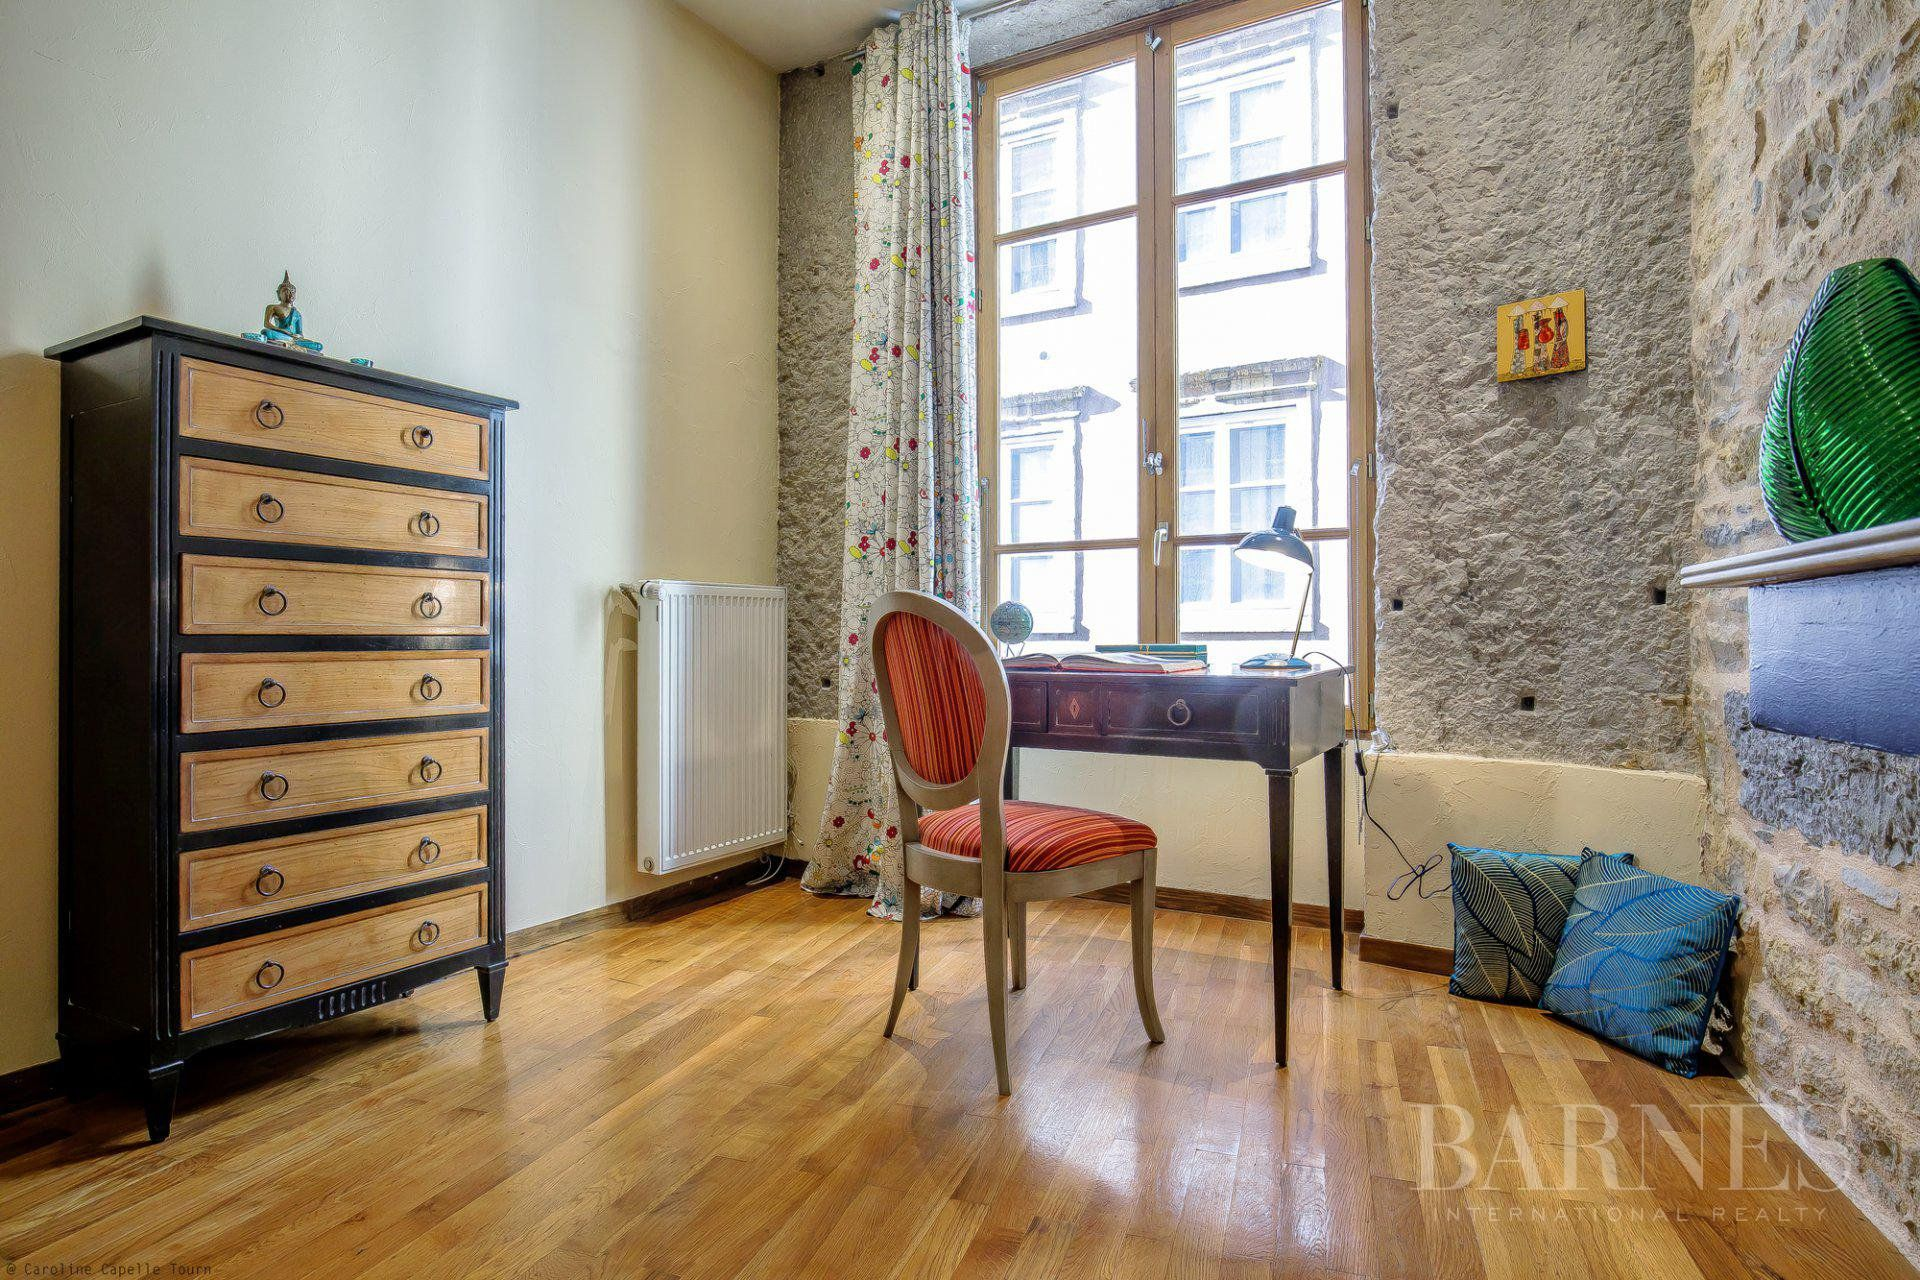 Lyon 1er - Apartment of 146 sqm - 4 bedrooms